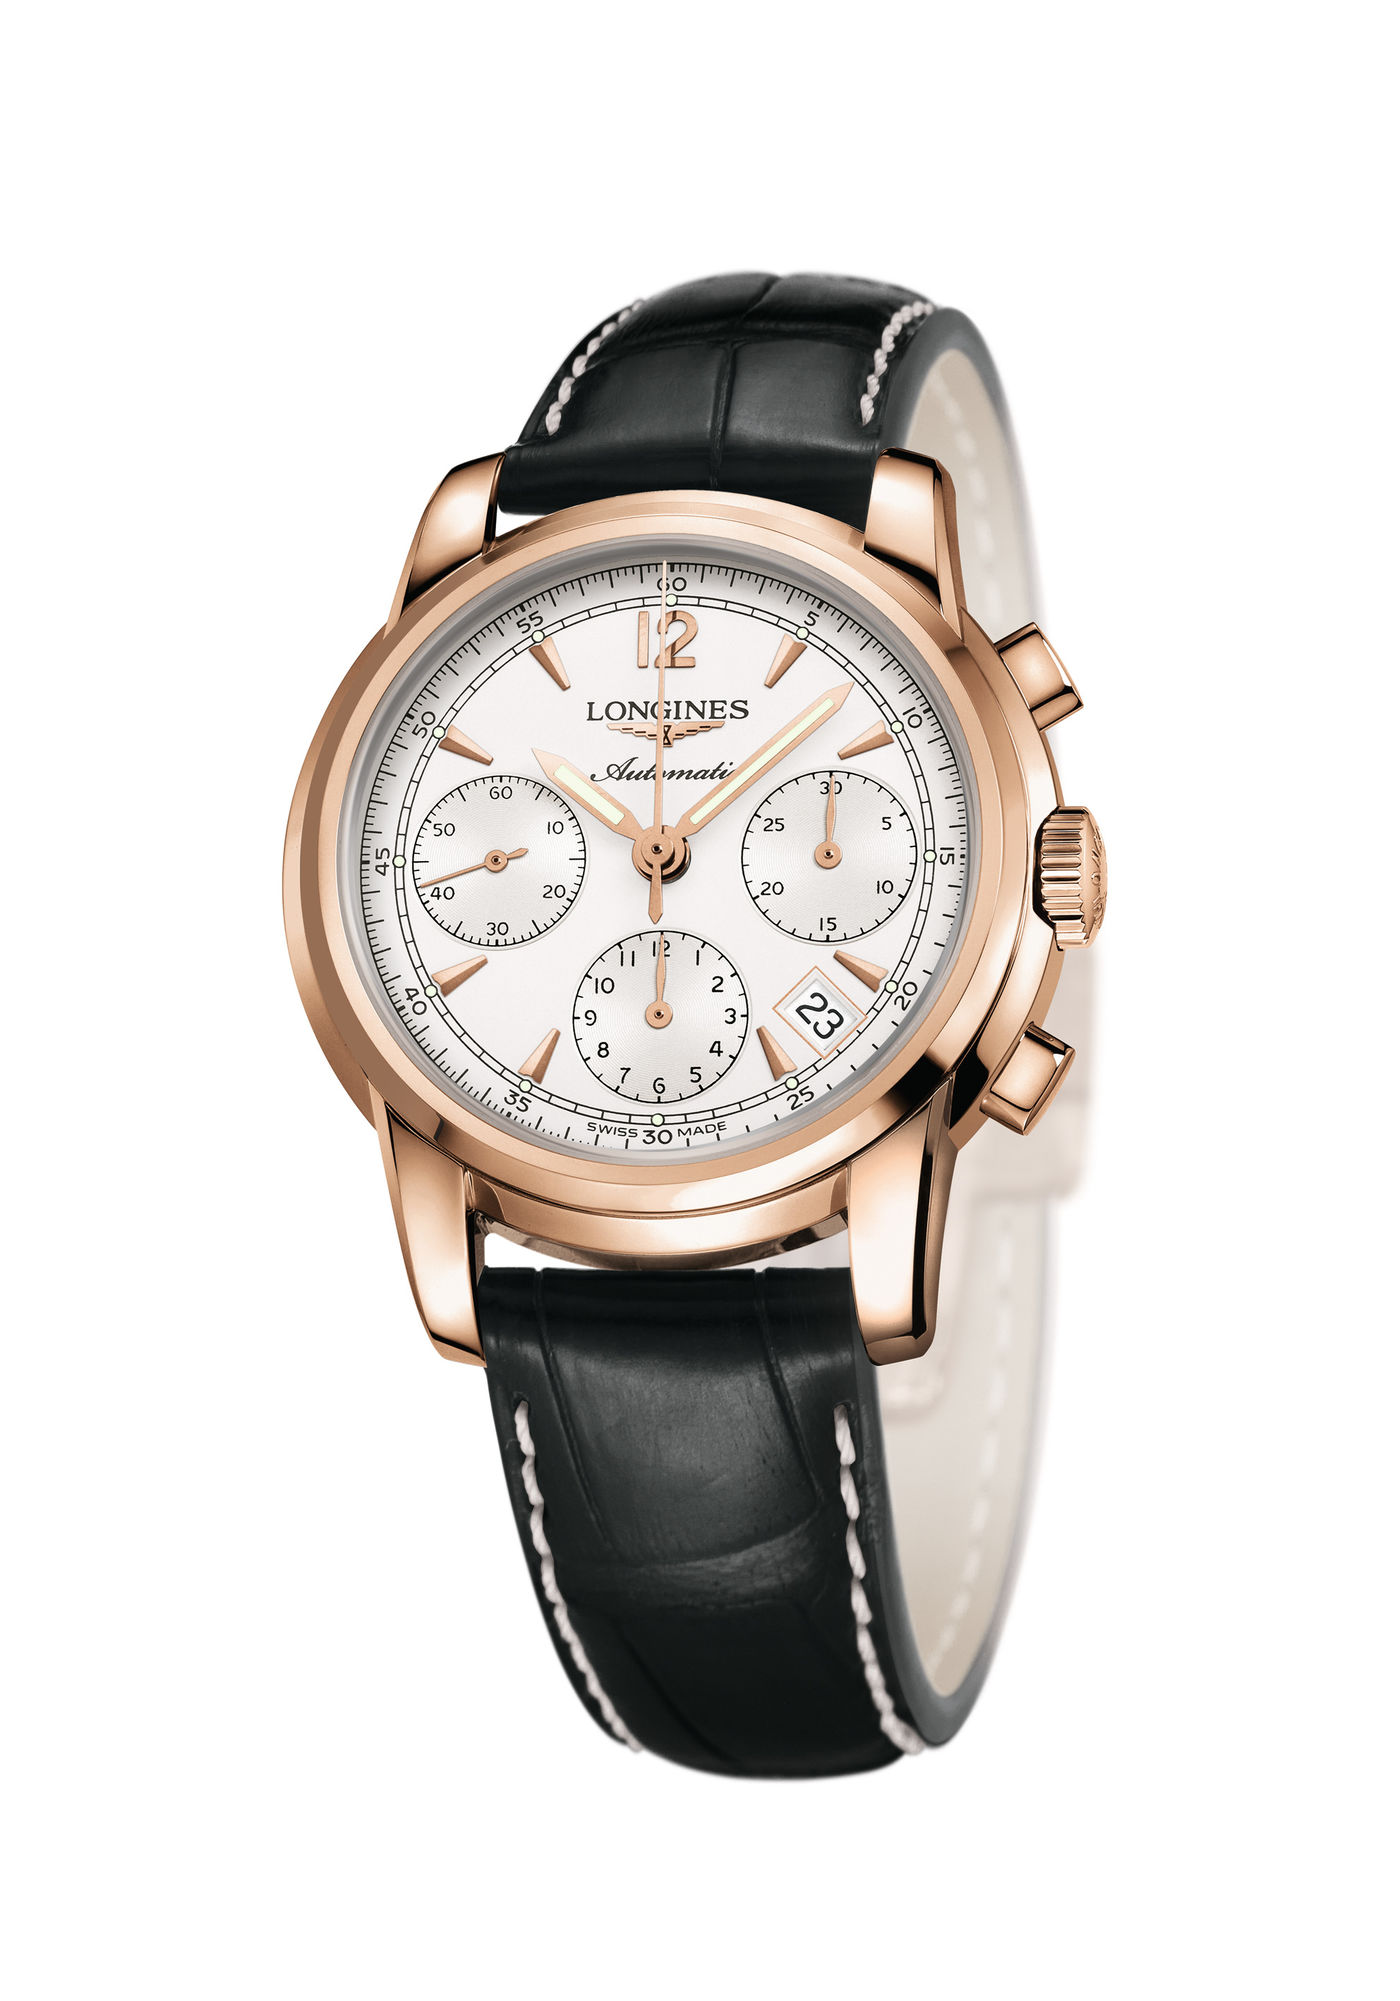 Longines The Longines Saint-Imier Collection Watch 10